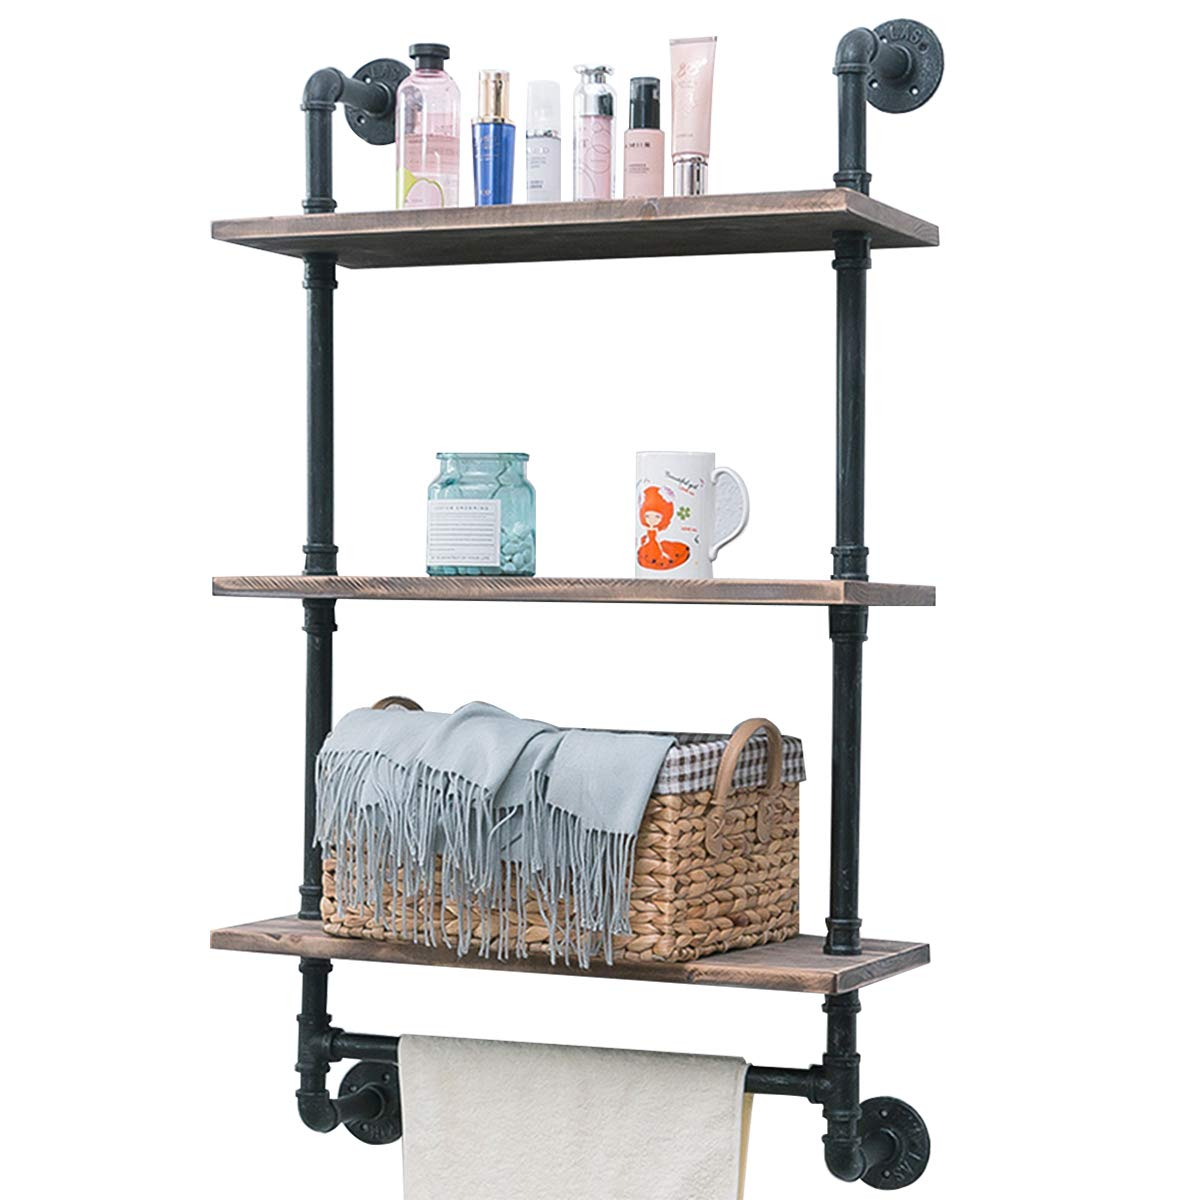 "Industrial Pipe Shelf,Rustic Wall Shelf with Towel Bar,24"" Towel Racks for Bathroom,3 Tiered Pipe Shelves Wood Shelf Shelving"